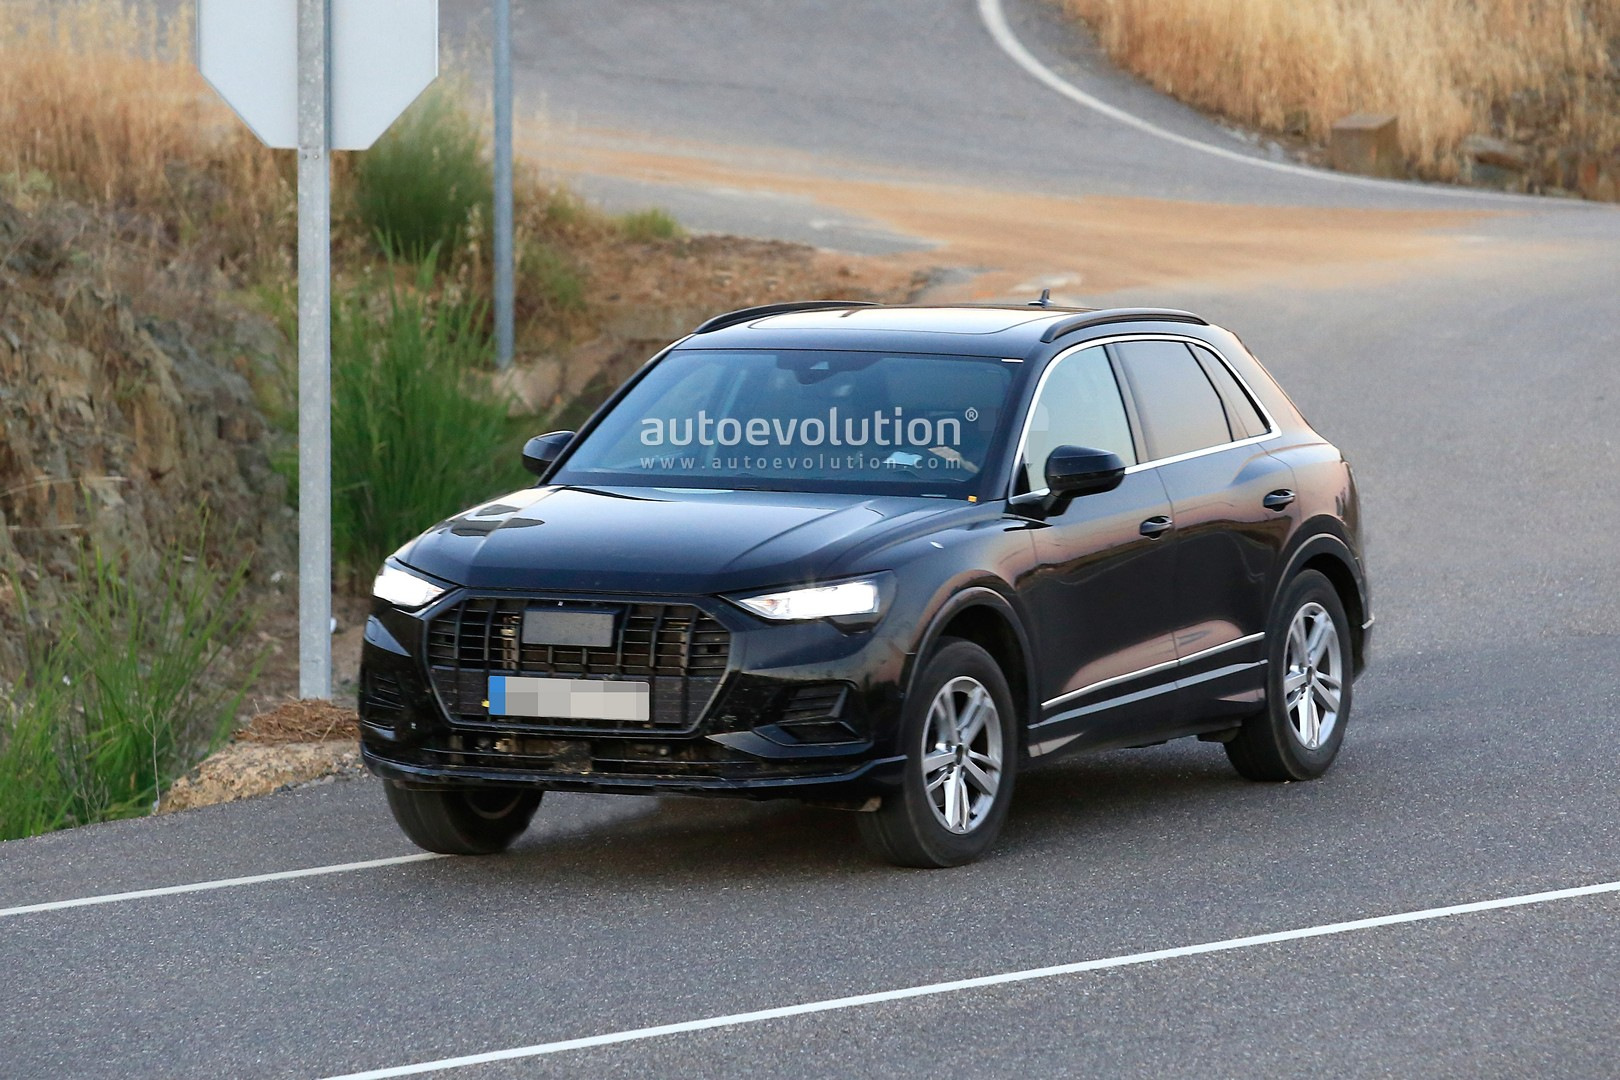 spyshots 2019 audi q3 caught undisguised looks like a mini q8 autoevolution. Black Bedroom Furniture Sets. Home Design Ideas